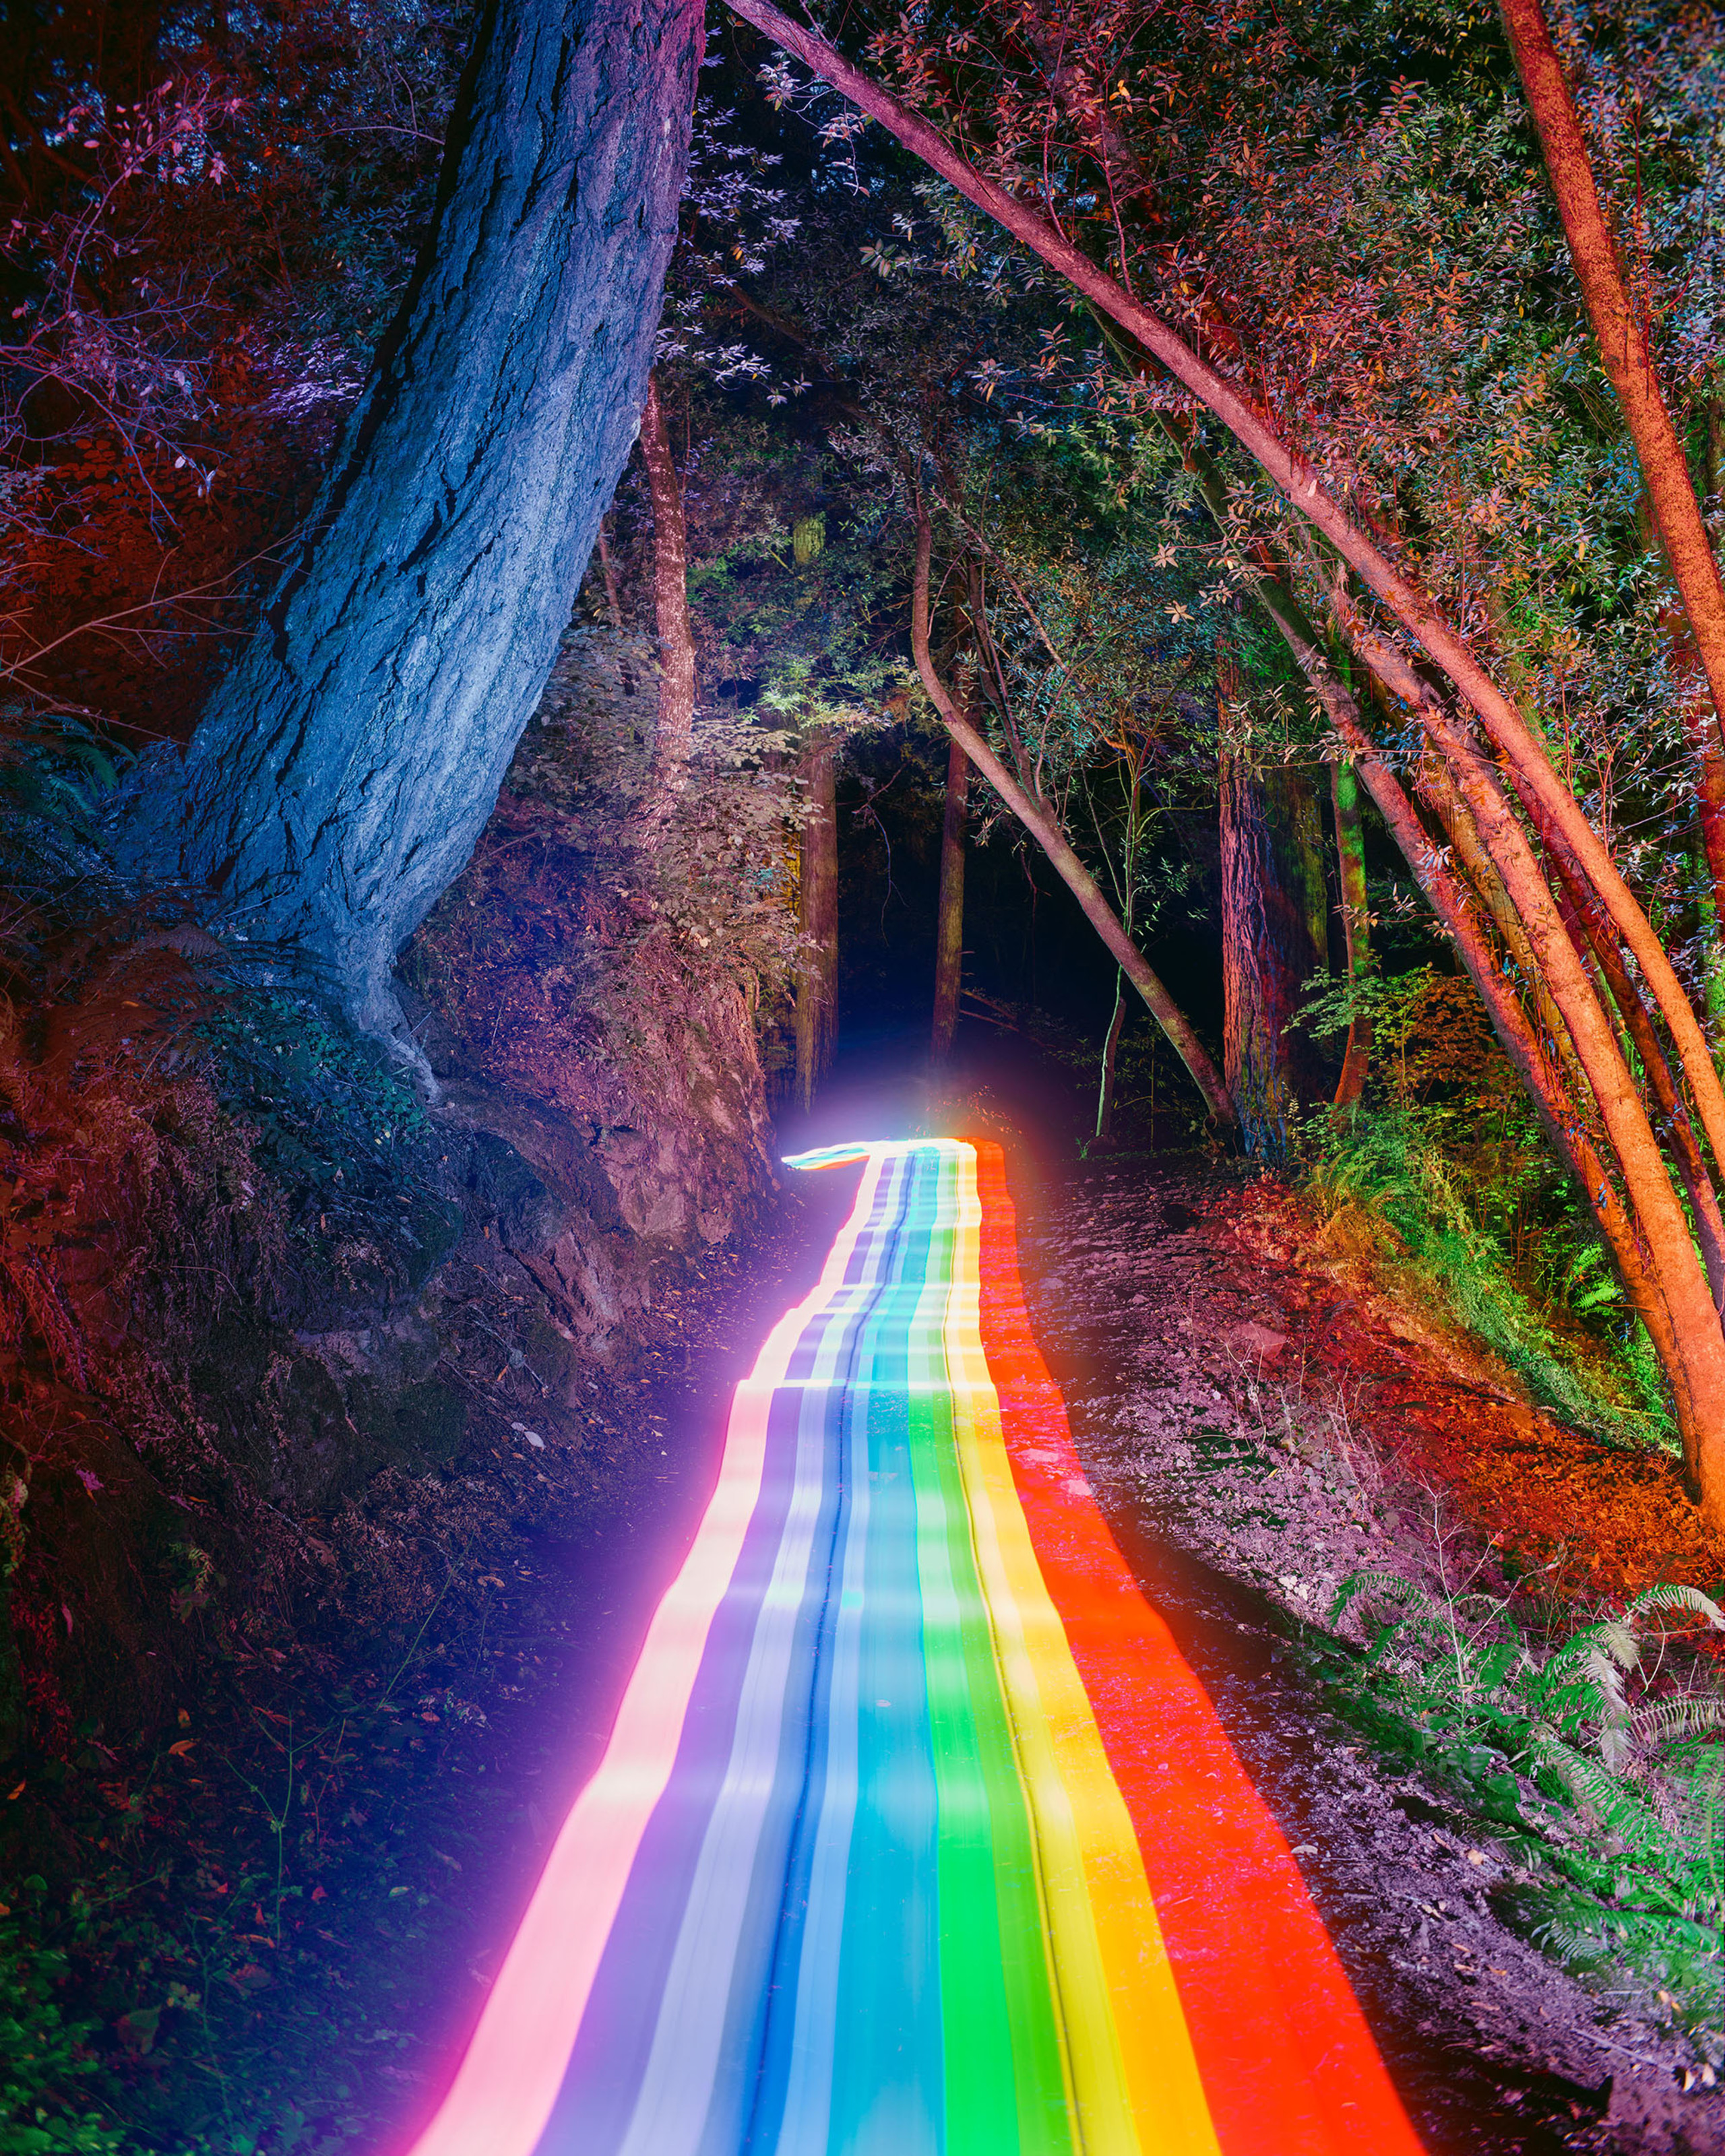 Daniel Mercadante | The Rainbow Road Series